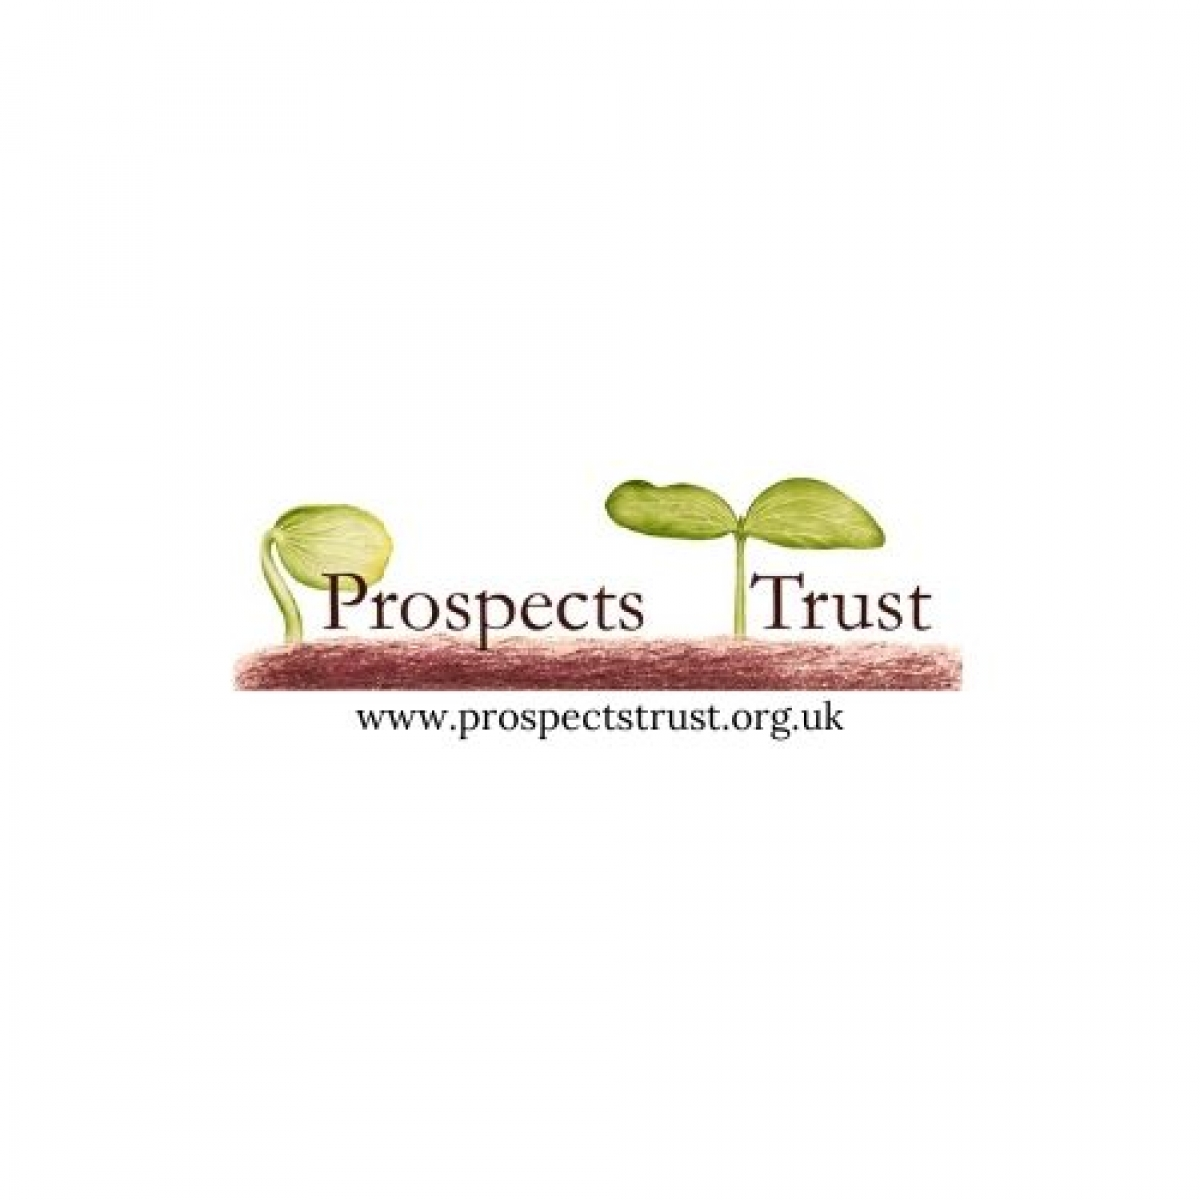 The Prospects Trust eCards